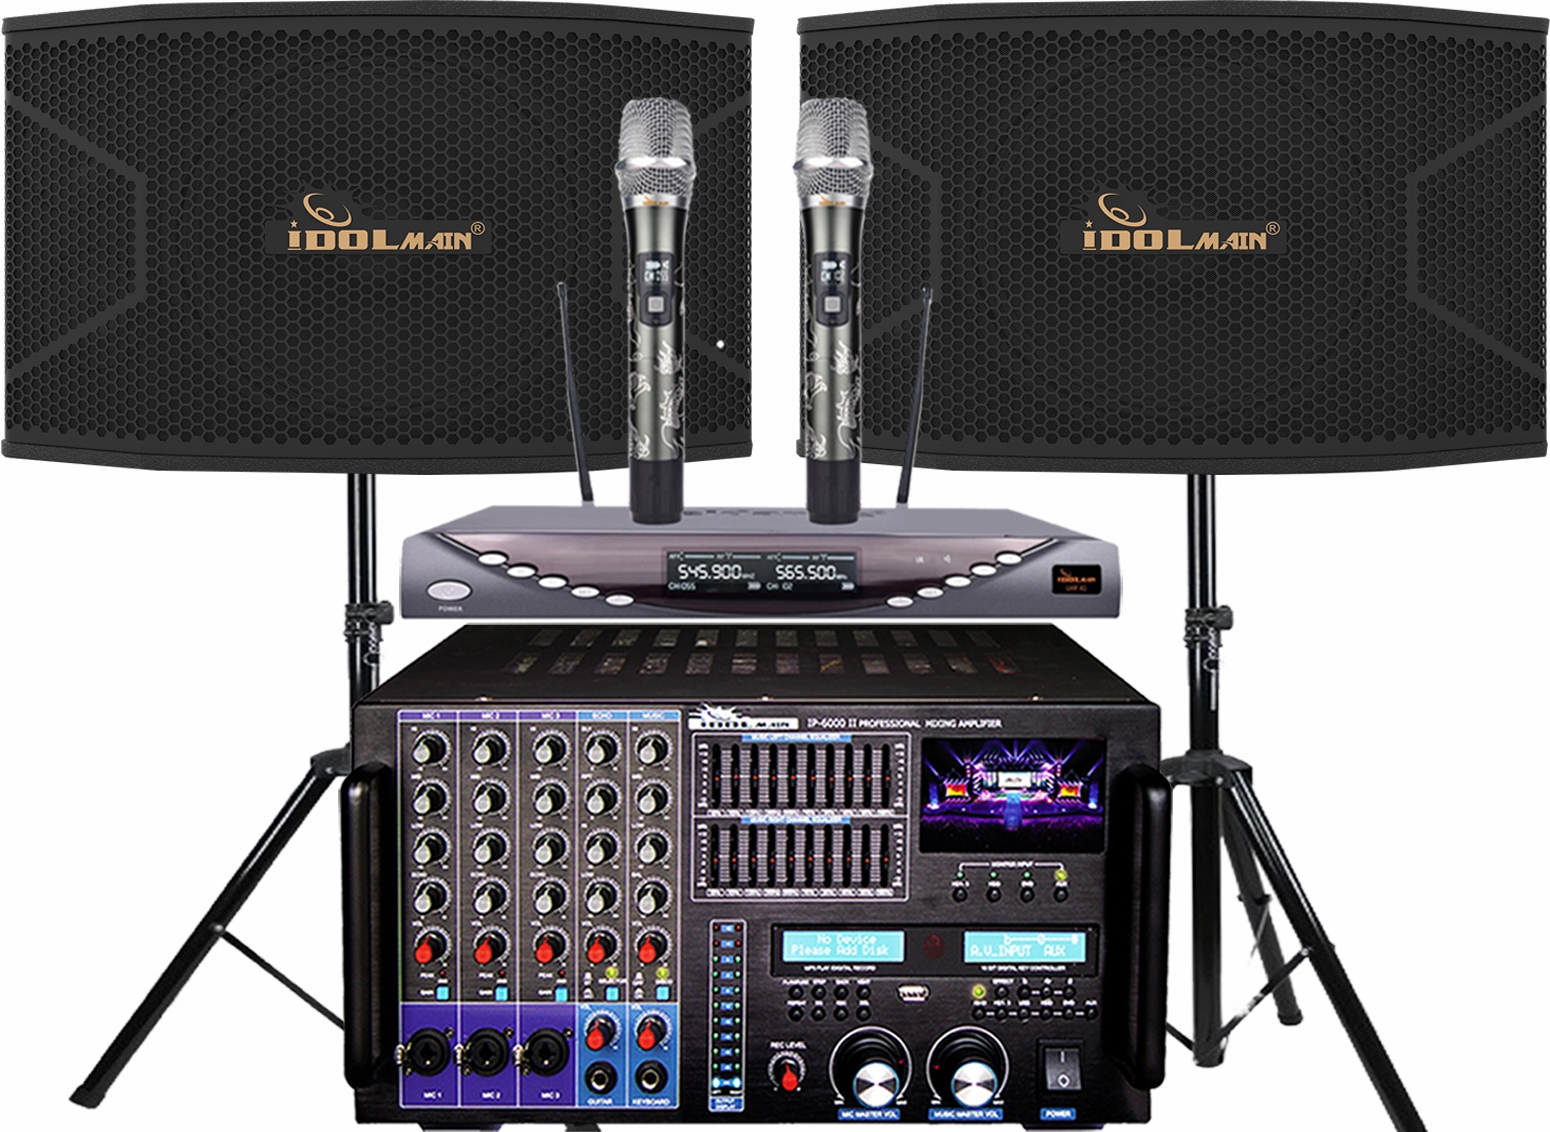 "<font color="" blue"">PACKAGE 6 </font> -- IPS-20 Speakers & IP-6000 II Mixing Amplifier & UHF-X1D Wireless Microphone"